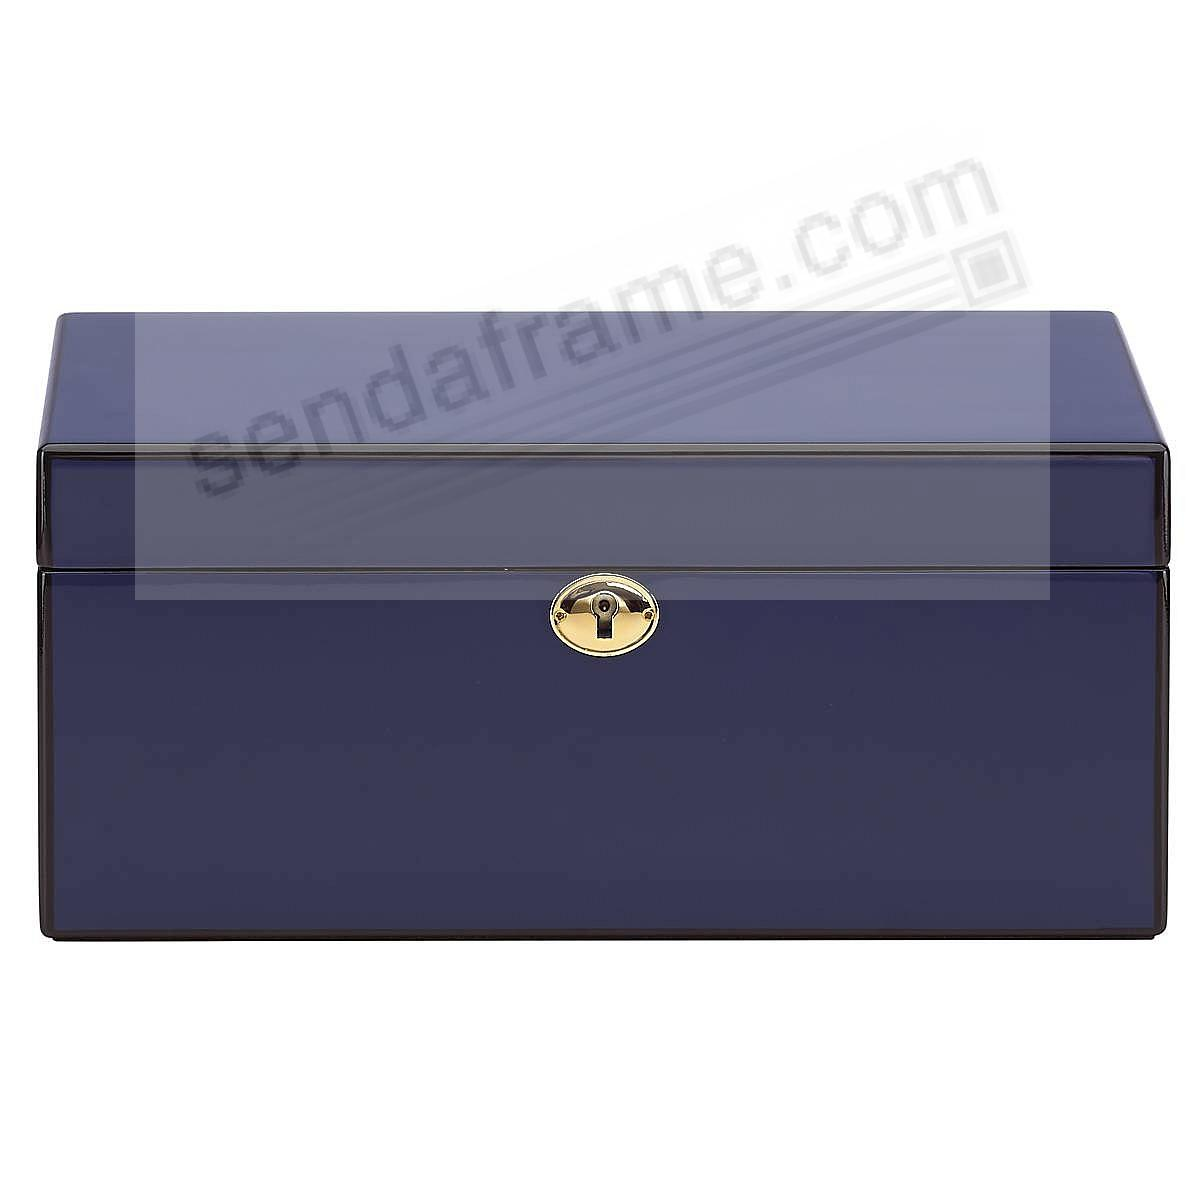 MODERN LINES NAVY-BLUE Jewelry Box by Reed & Barton®